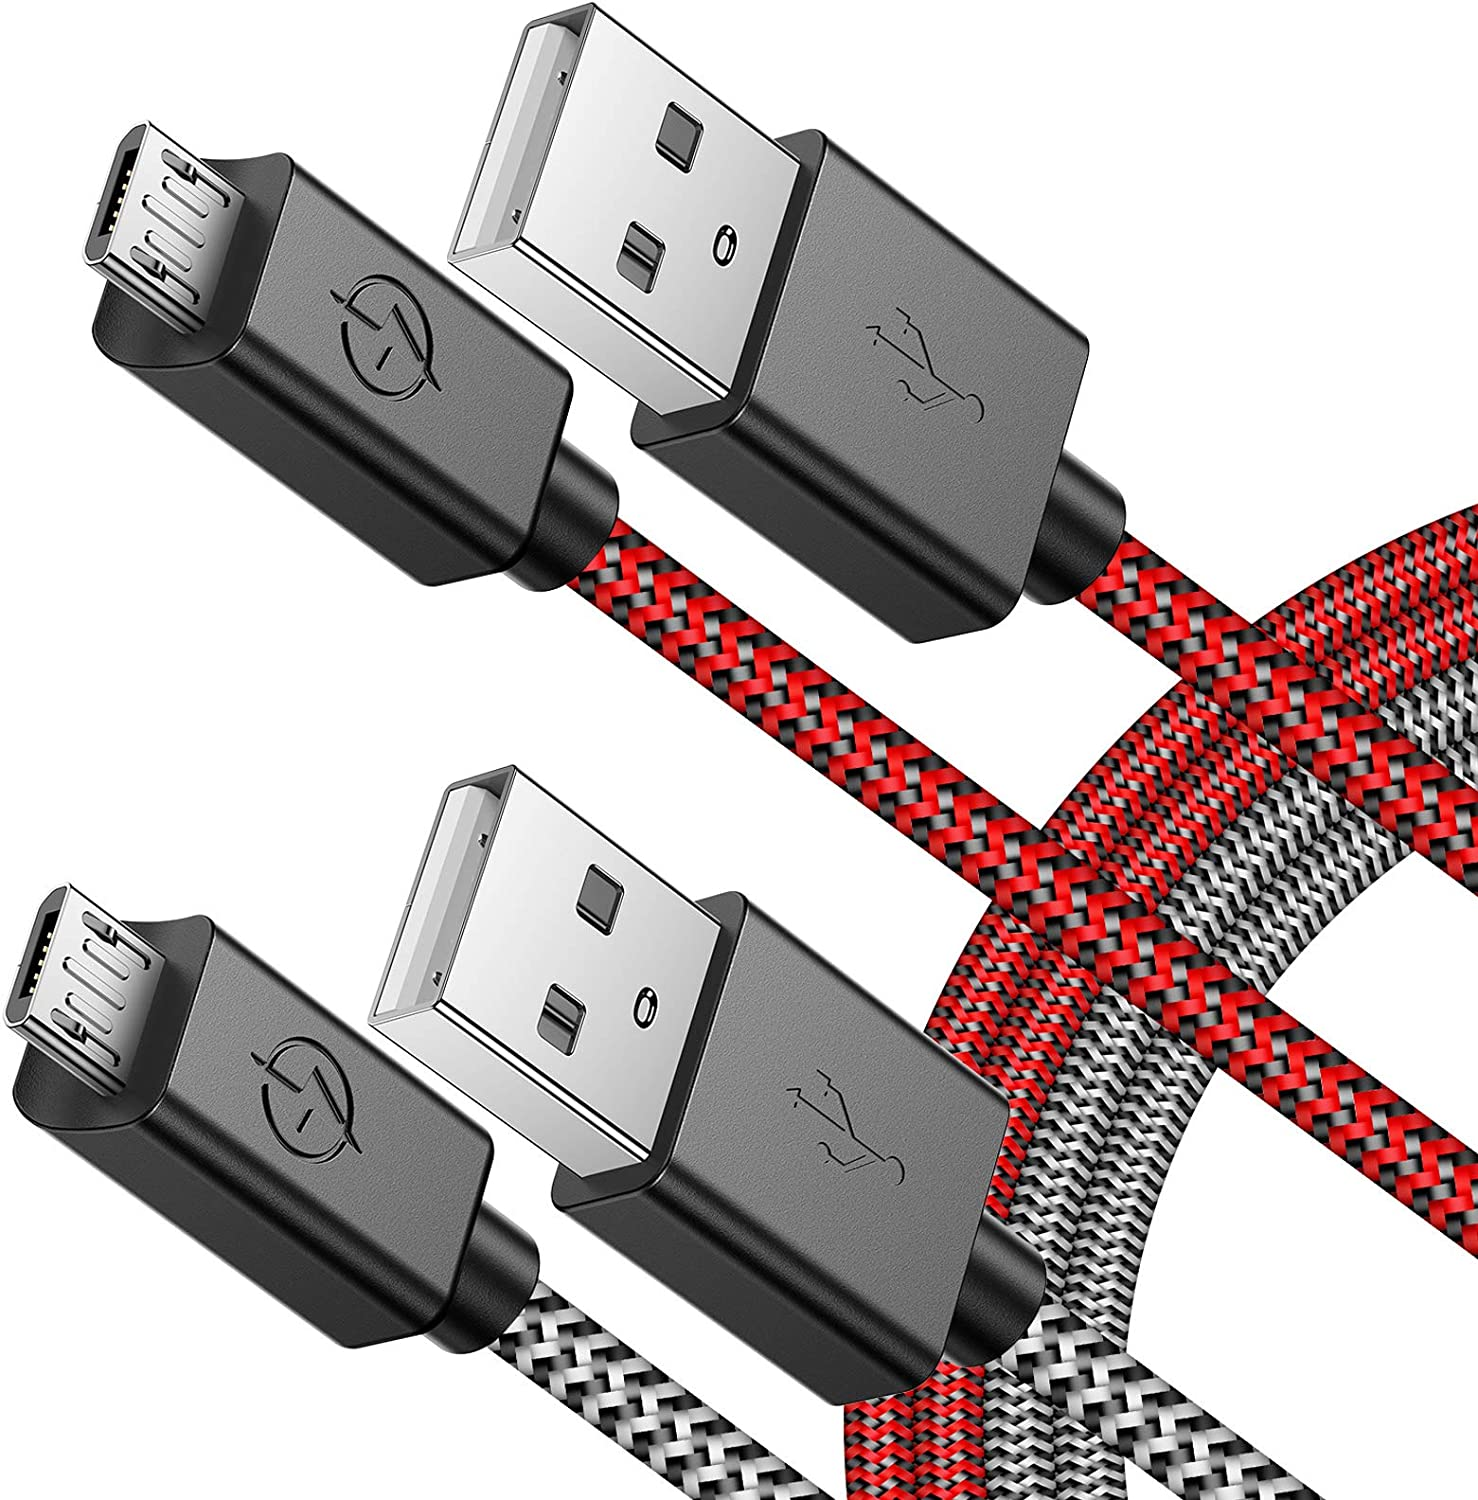 USB Cable 10ft 2 Pack 10FT Nylon Braided Long Micro USB Cable High Speed Data and Charging-11-2